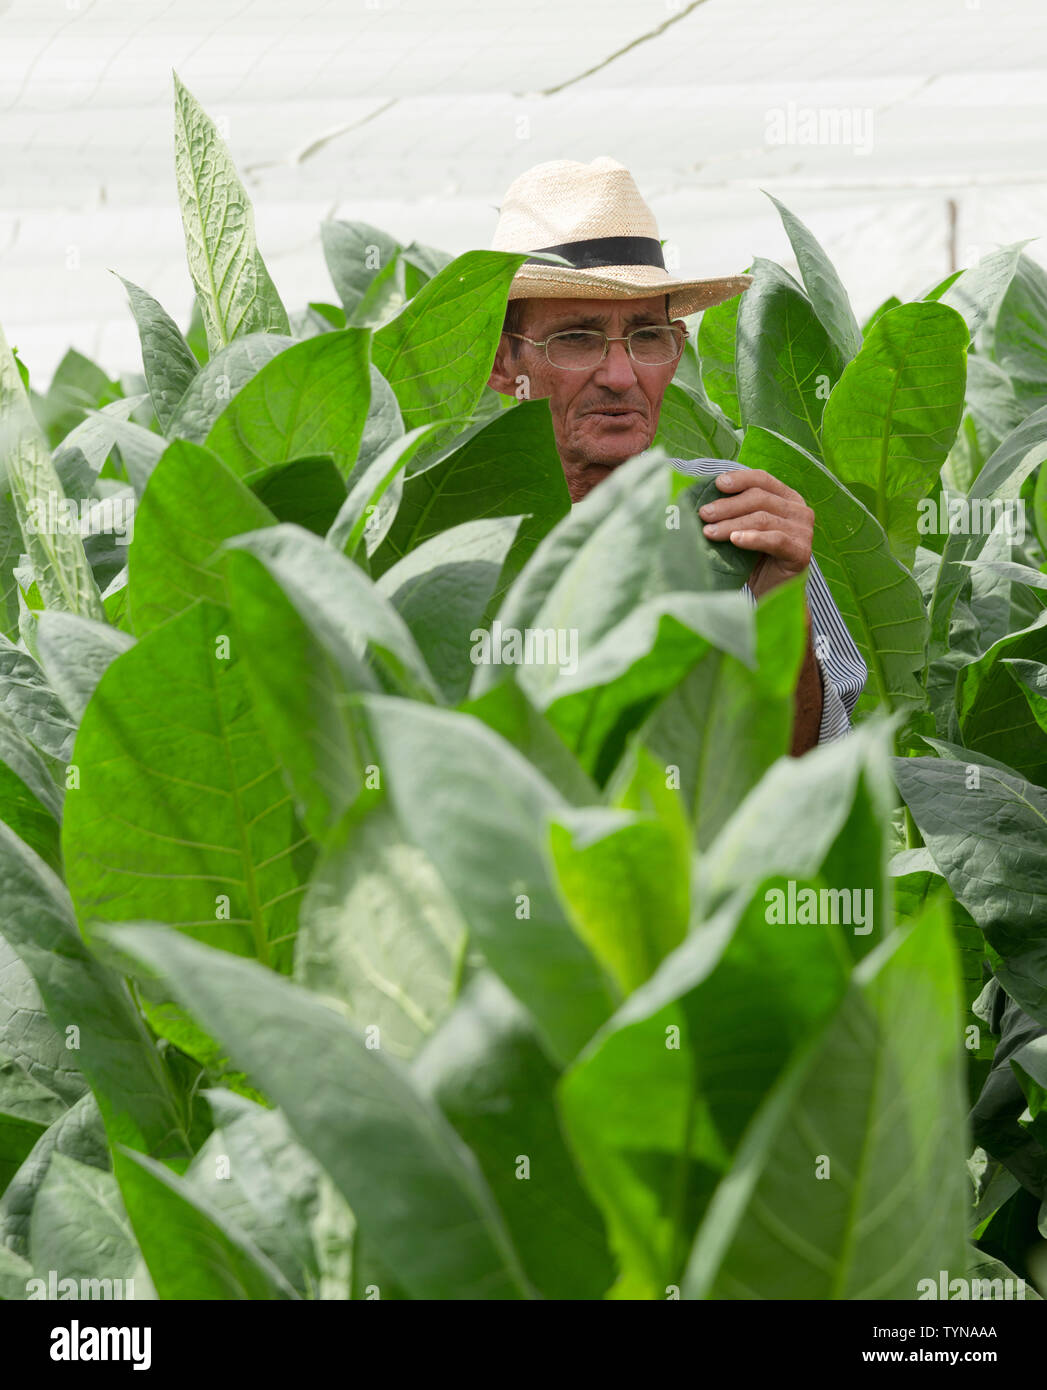 Farmer inspects his tobacco leaves growing under cover near the village of San Juan y Martinez, Pinar del Rio Province, Cuba - Stock Image